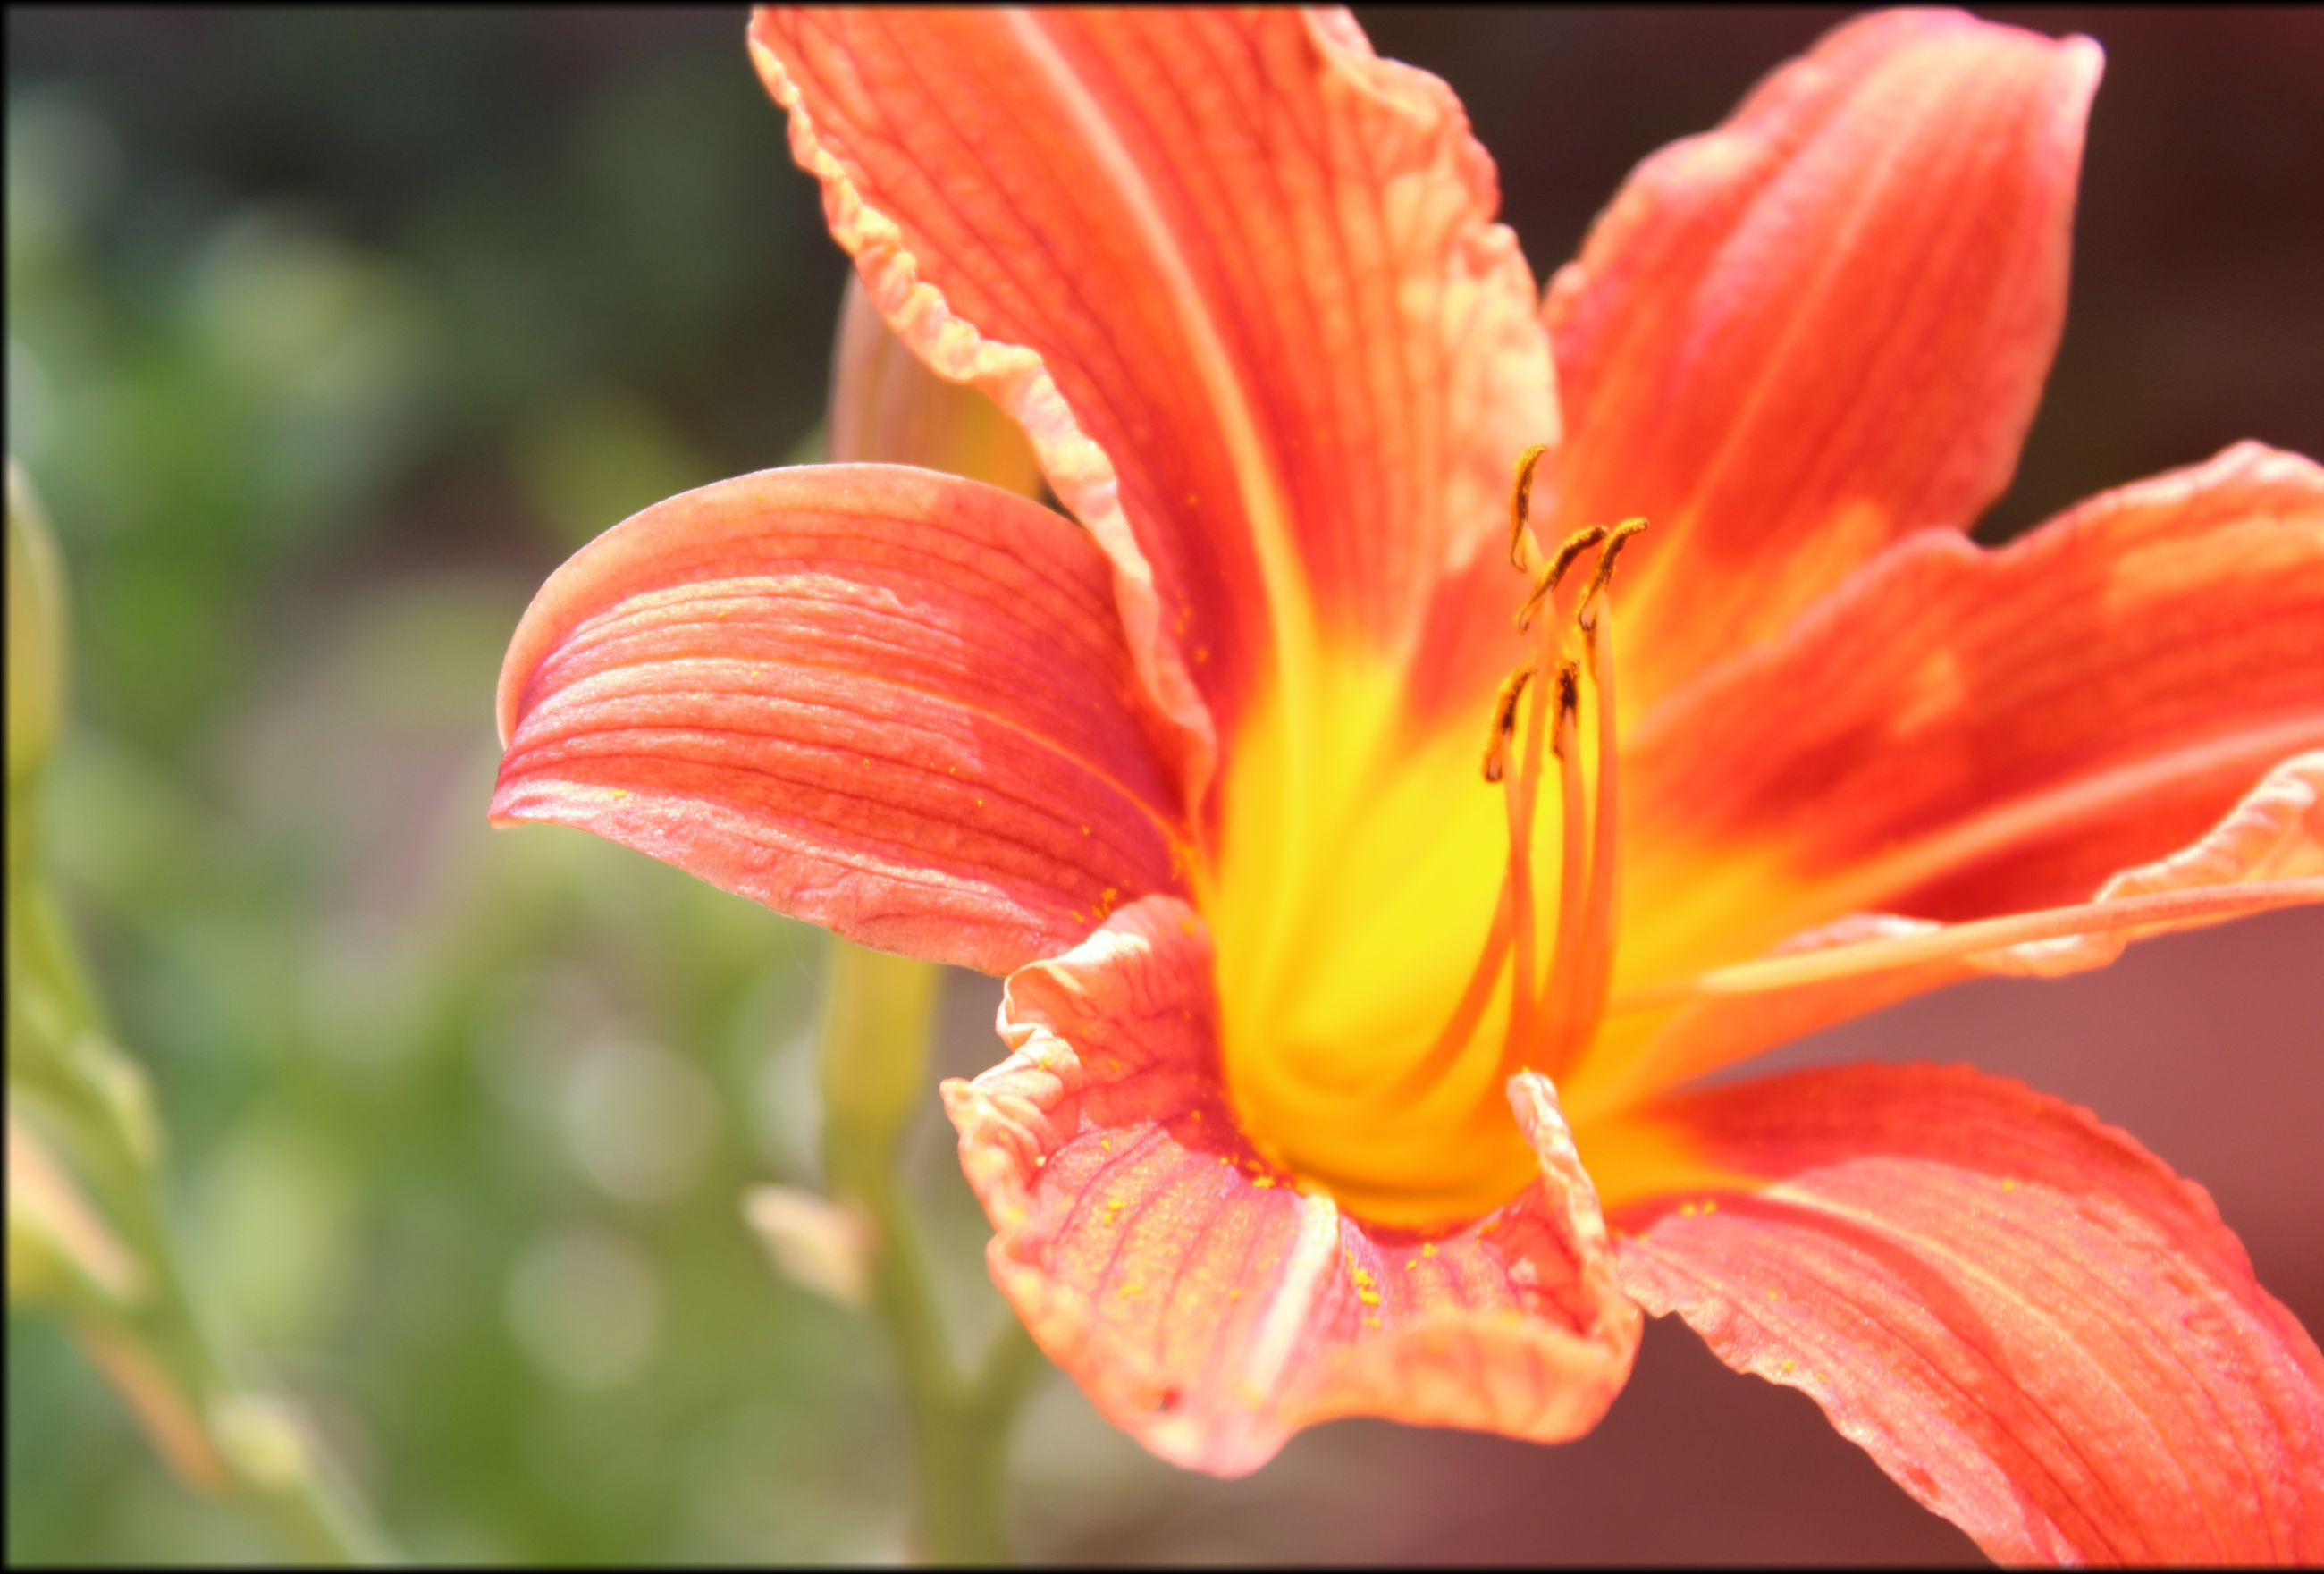 flower, petal, flower head, freshness, fragility, beauty in nature, close-up, growth, stamen, red, blooming, pollen, nature, focus on foreground, single flower, in bloom, plant, blossom, orange color, selective focus